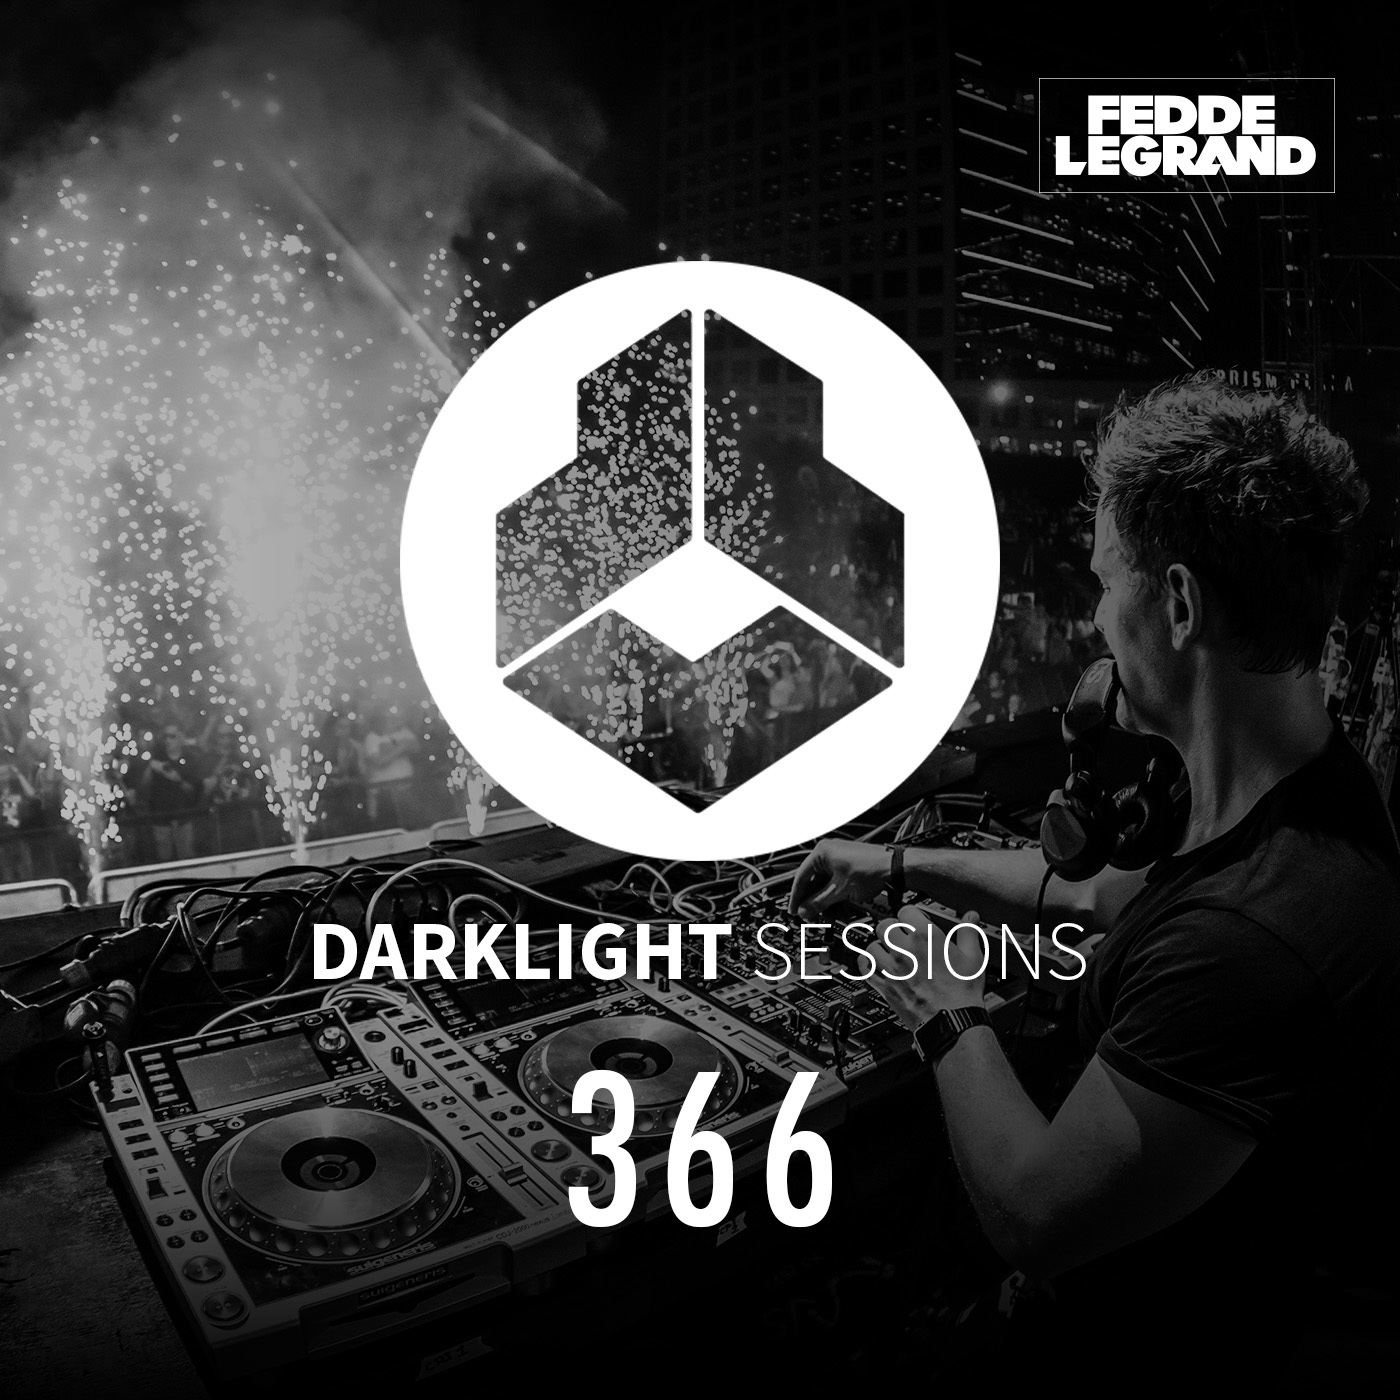 Darklight Sessions 366